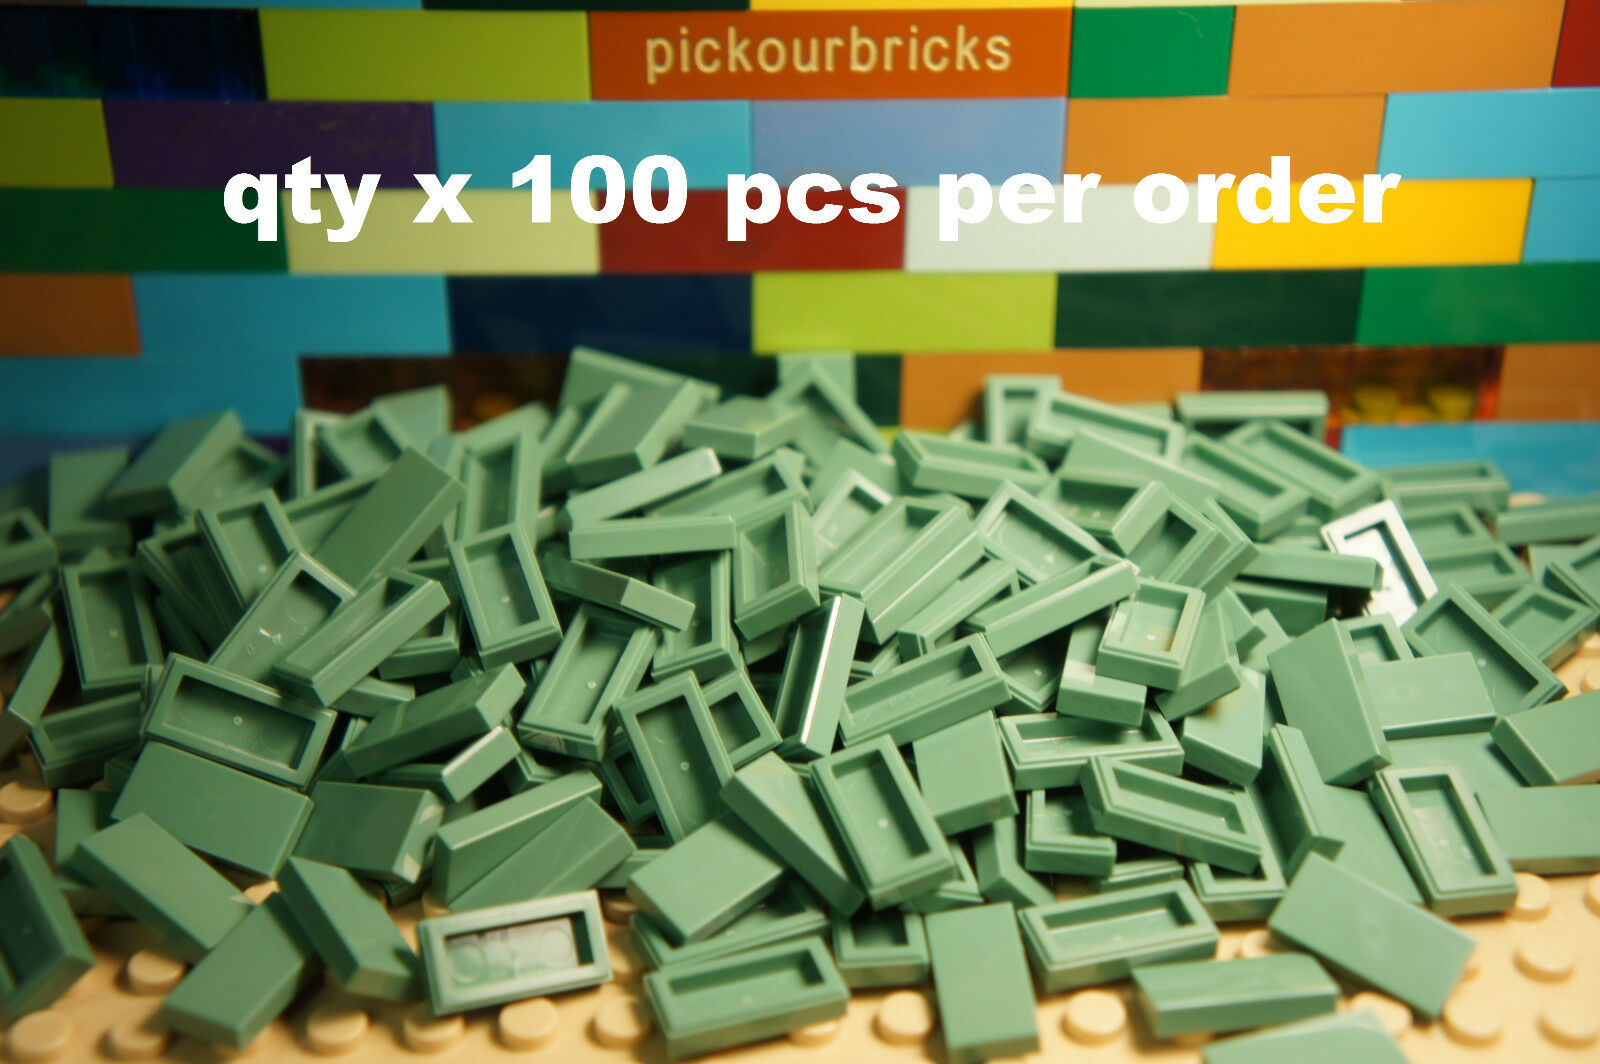 LEGO LOT OF 50 NEW BRIGHT PINK 1 X 4 TILES FLAT SMOOTH BLOCKS PIECES